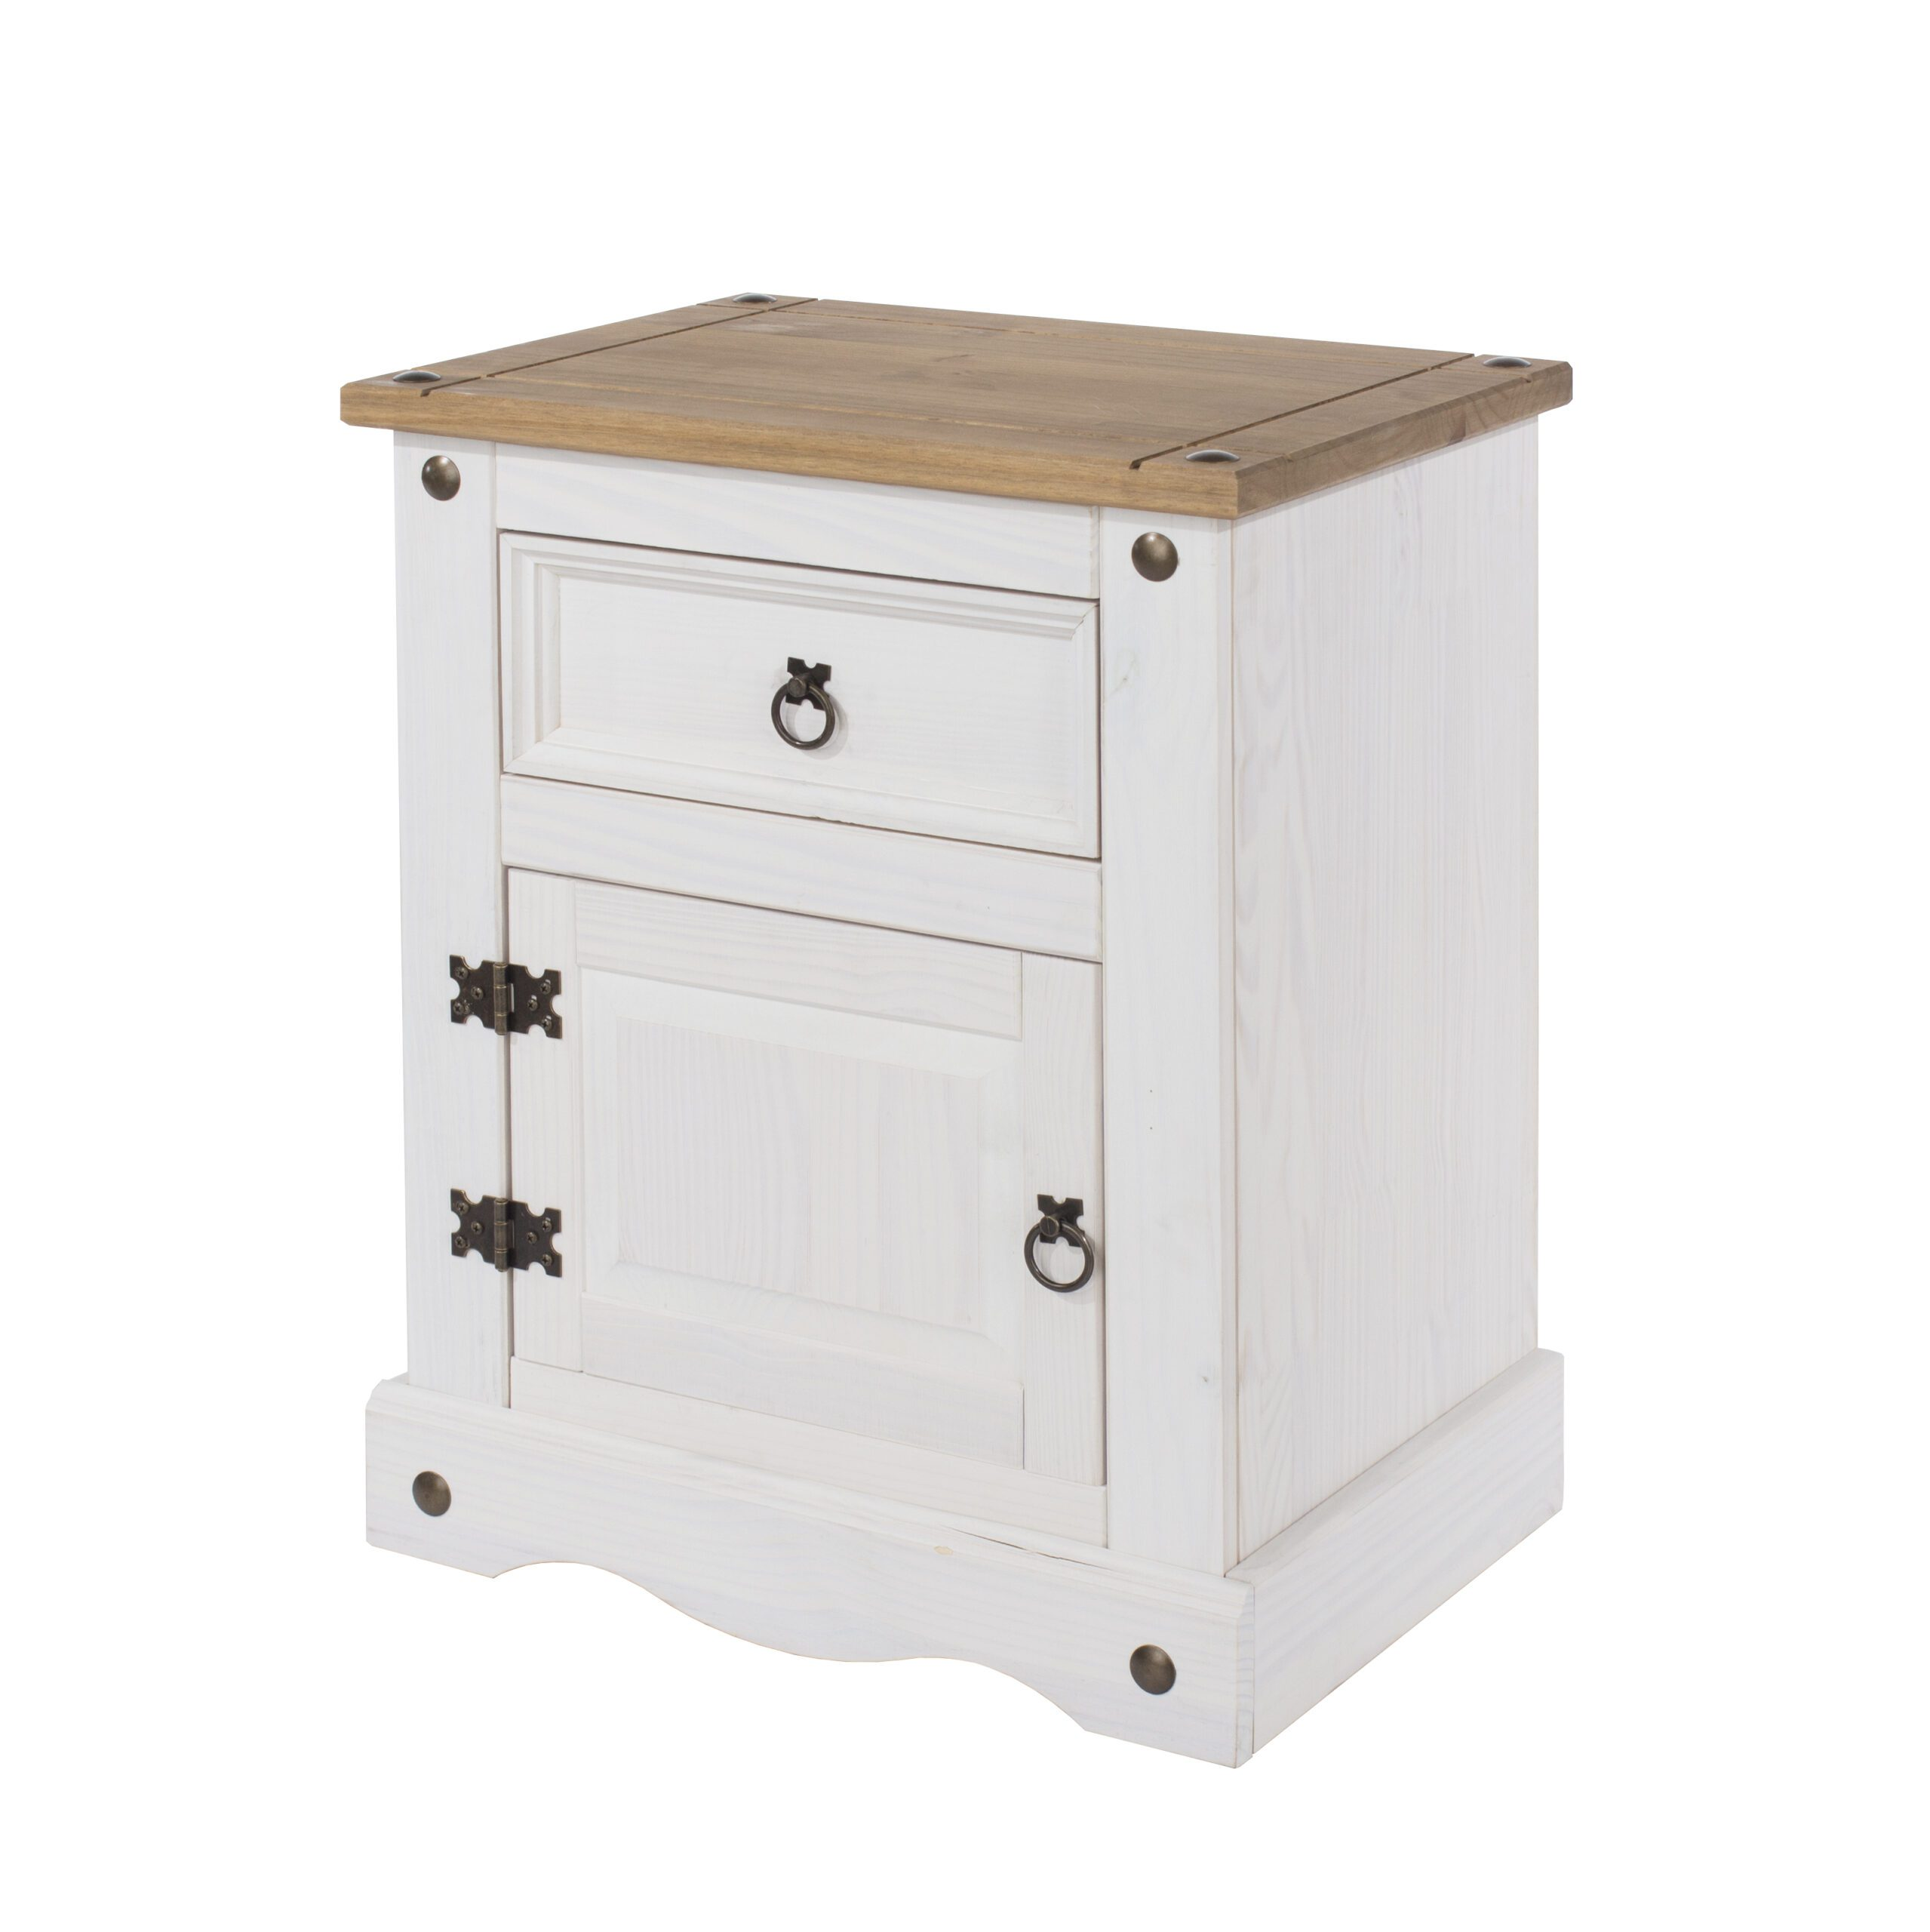 Carala Pine White 1 Door 1 Drawer White Painted Bedside Table